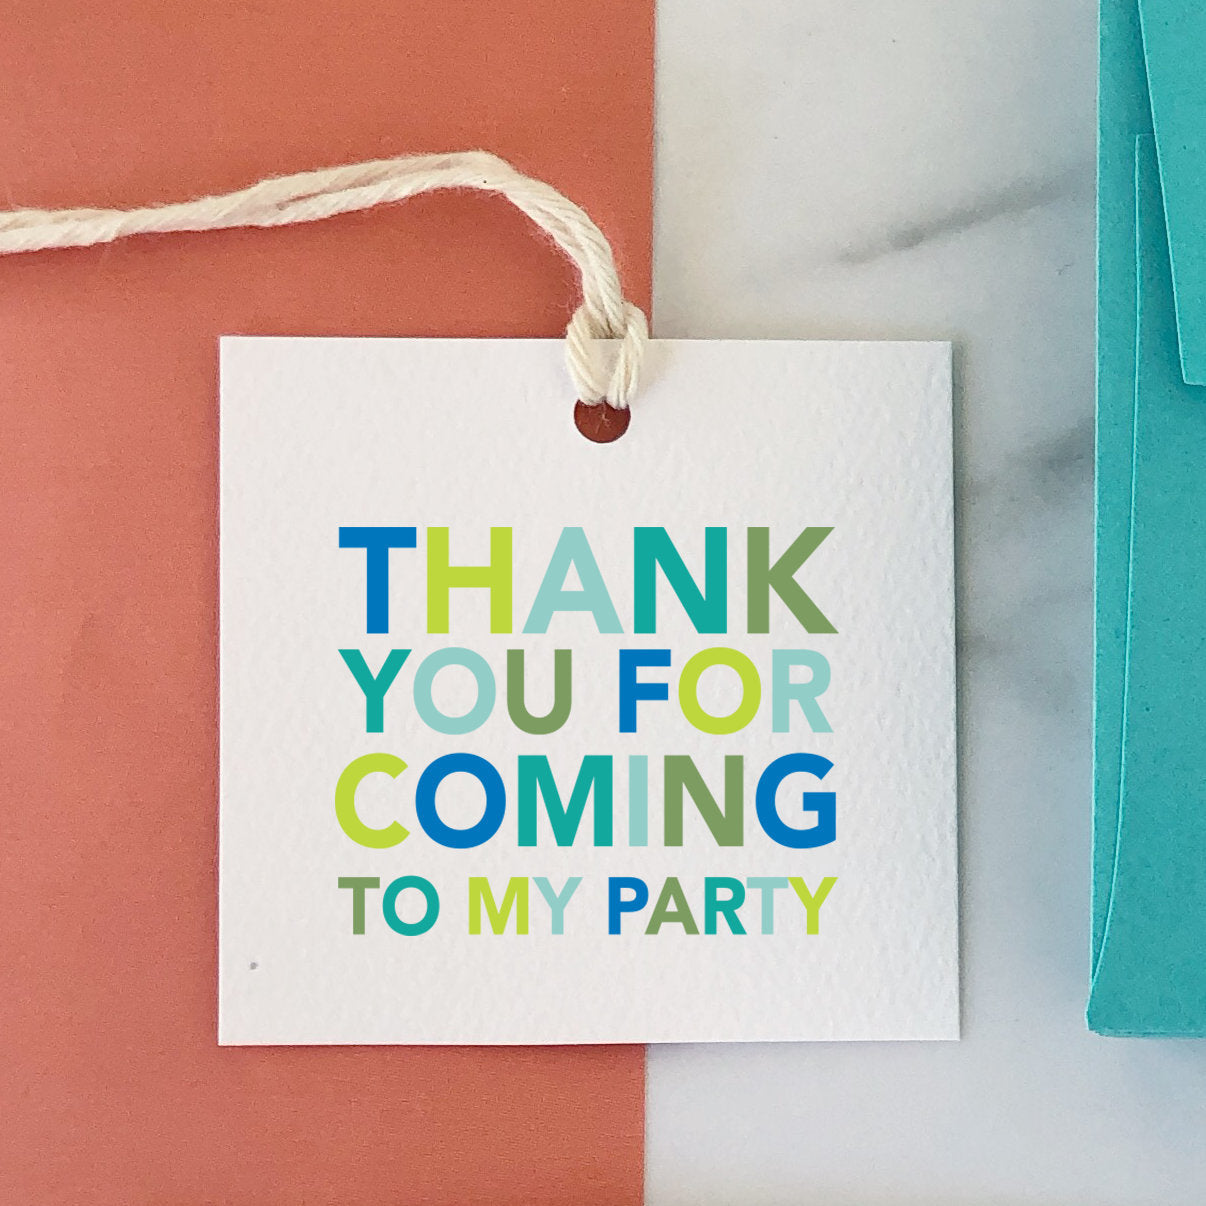 Thank You For Coming To My Party Blue Tag, Party Favor Gift Tag, Birthday Tag, Colorful, Birthday Favor, Square Tag, Striped Back 002ETS - Joy Creative Shop